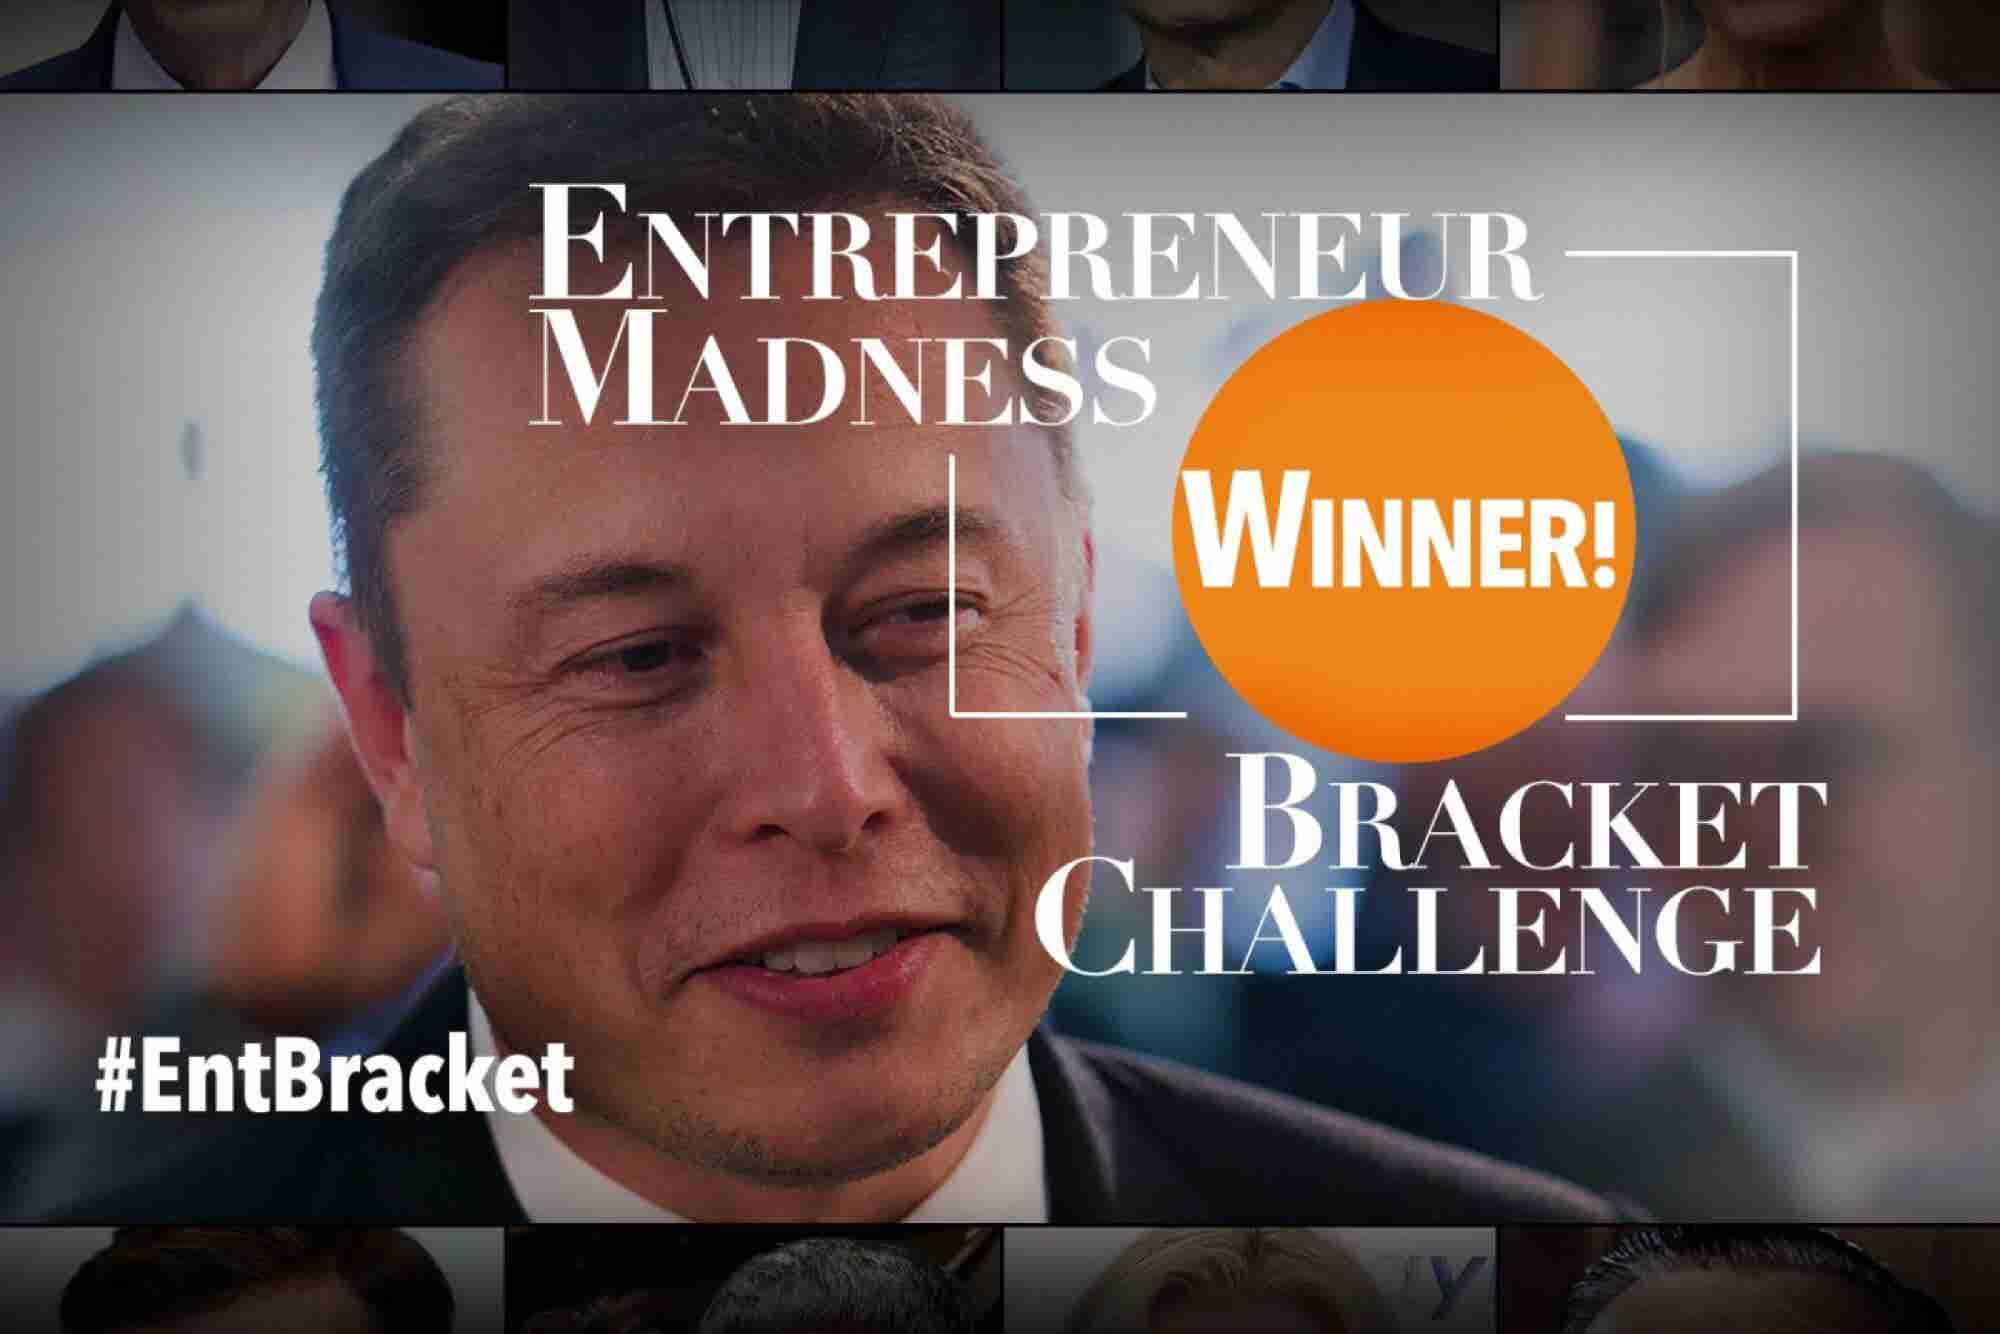 Elon Musk Is the Winner of Entrepreneur Bracket Madness